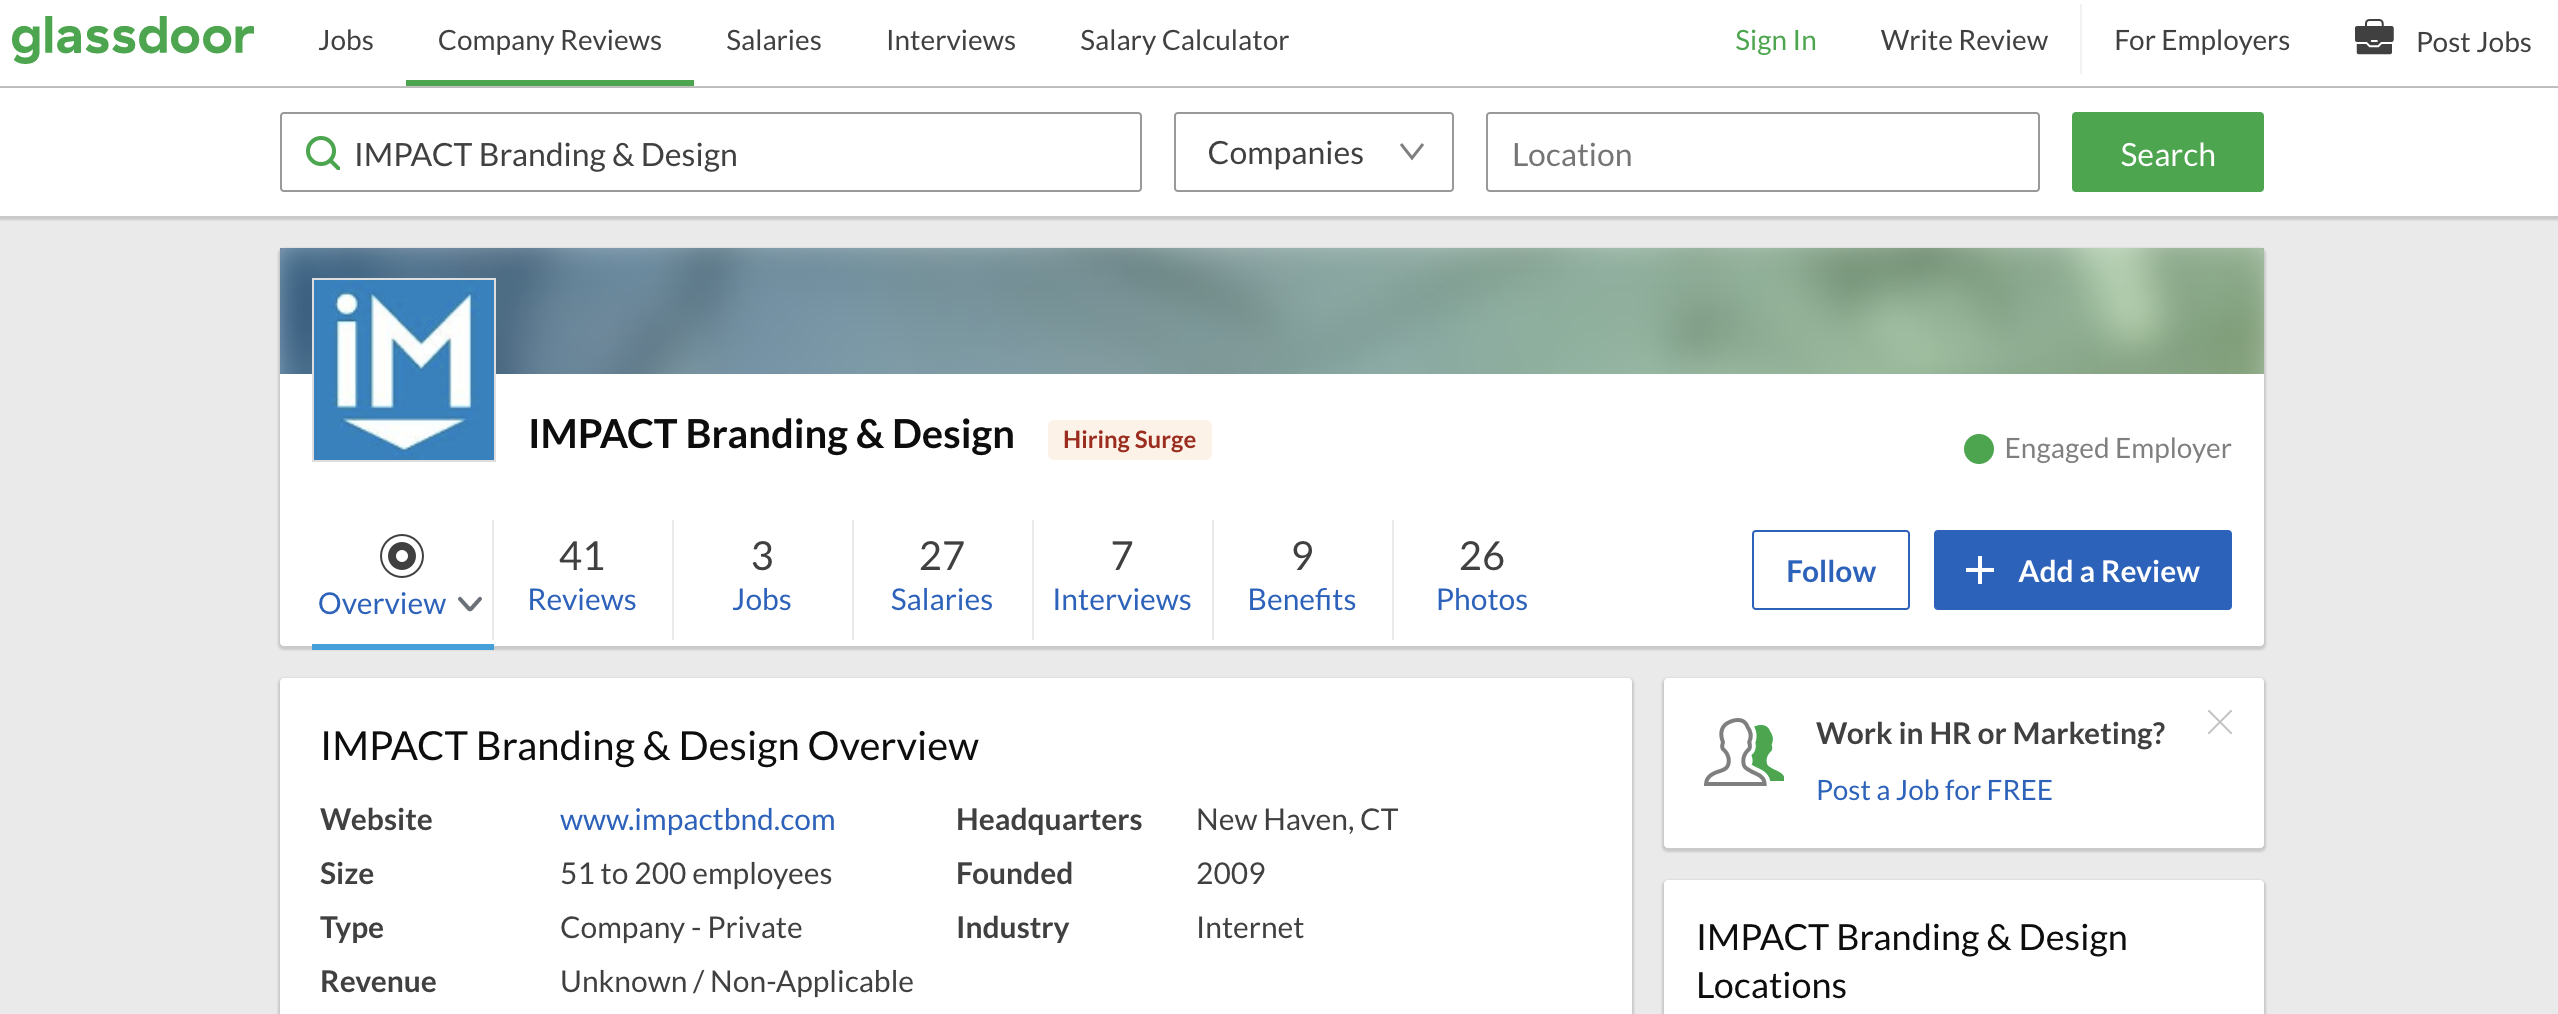 How do I increase my Glassdoor rating?